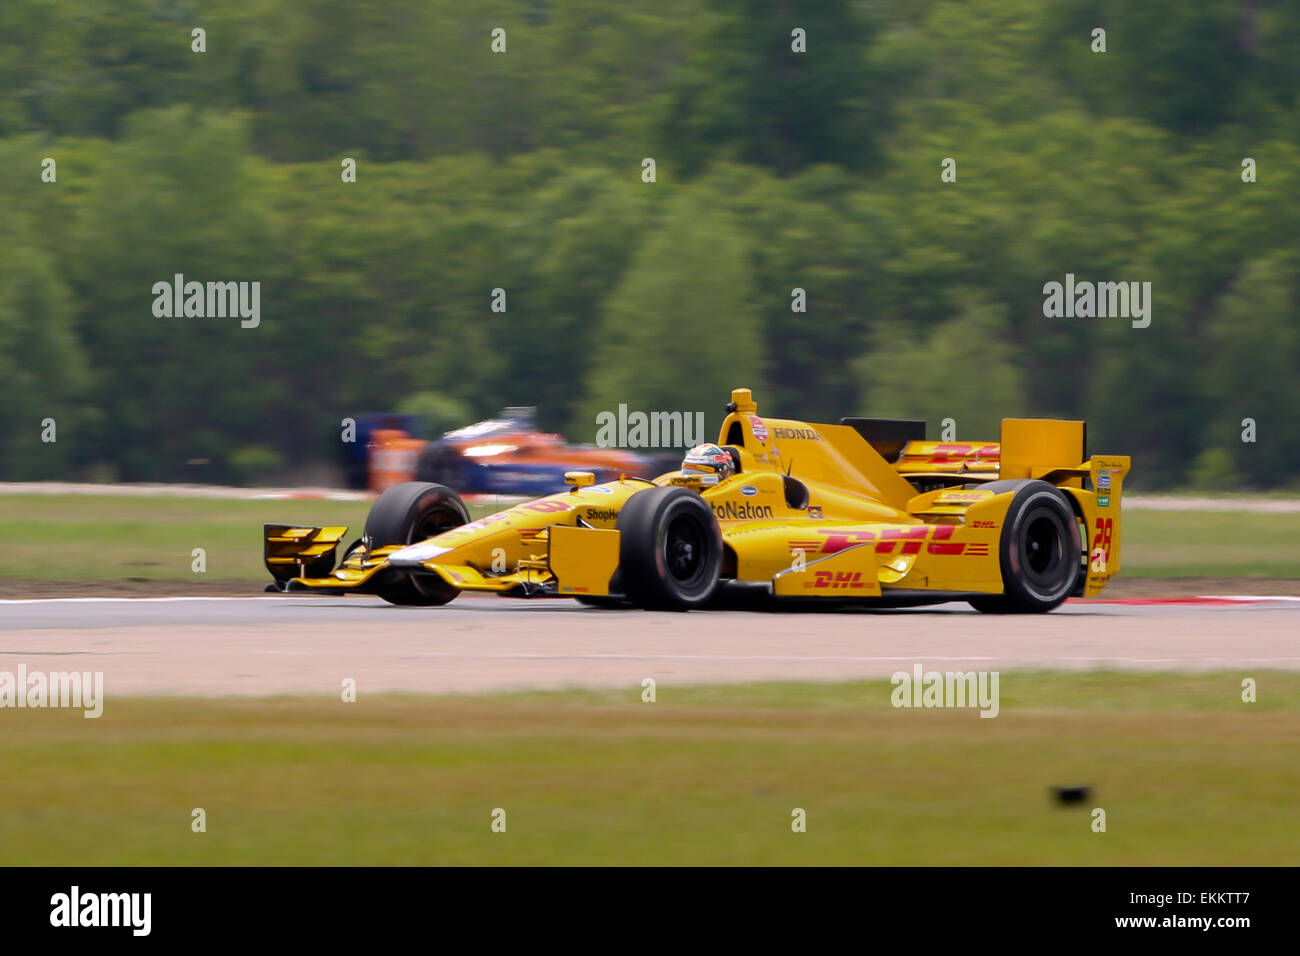 Avondale, LA, USA. 11. April 2015. #28 Ryan Hunter-Reay Andretti Autosport während des Indy Grand Prix von Stockbild